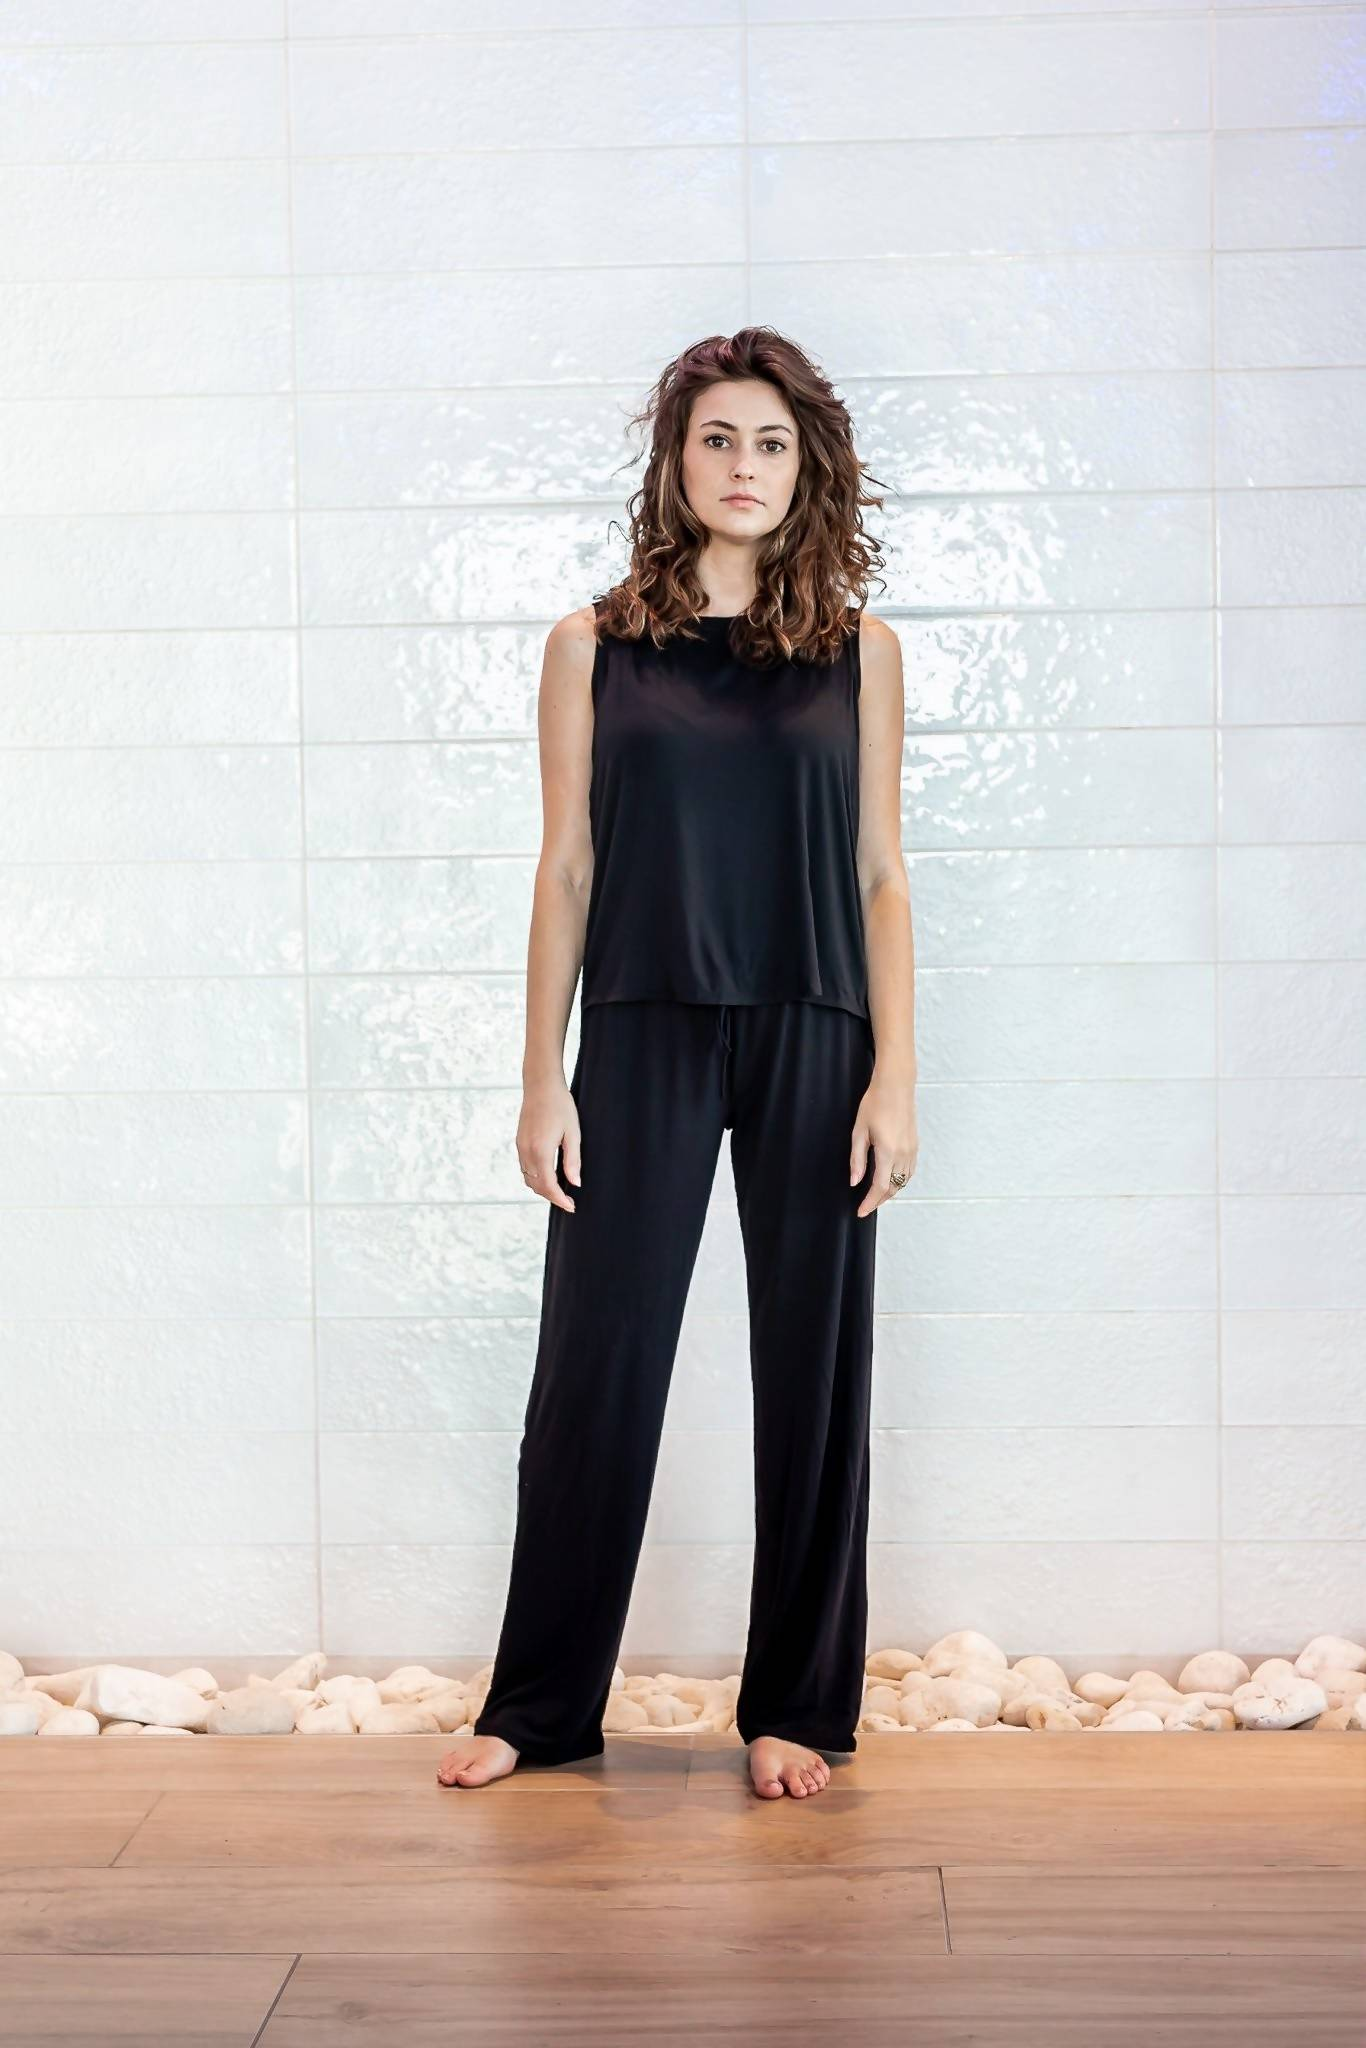 The Ashley- Bamboo Pajama Lounge Pants in Black